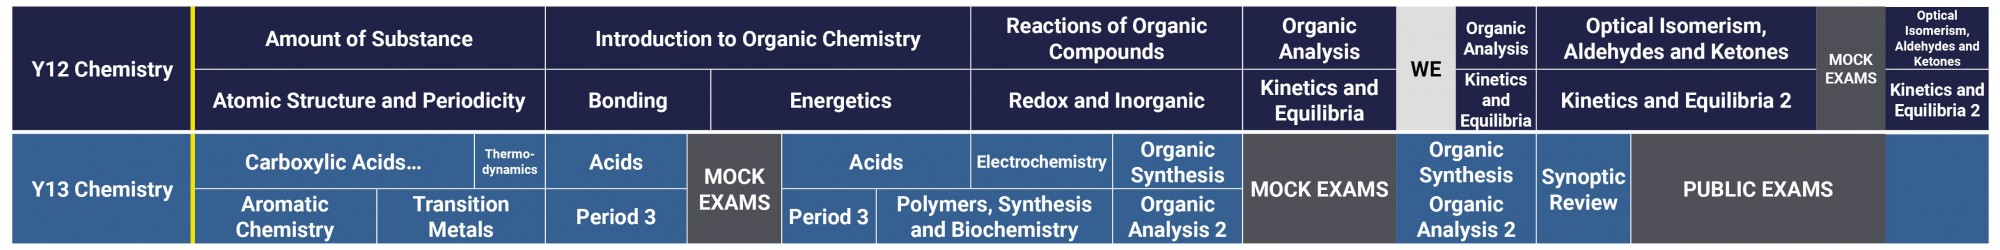 Science Curriculum 2021 2022 A Level Chemistry